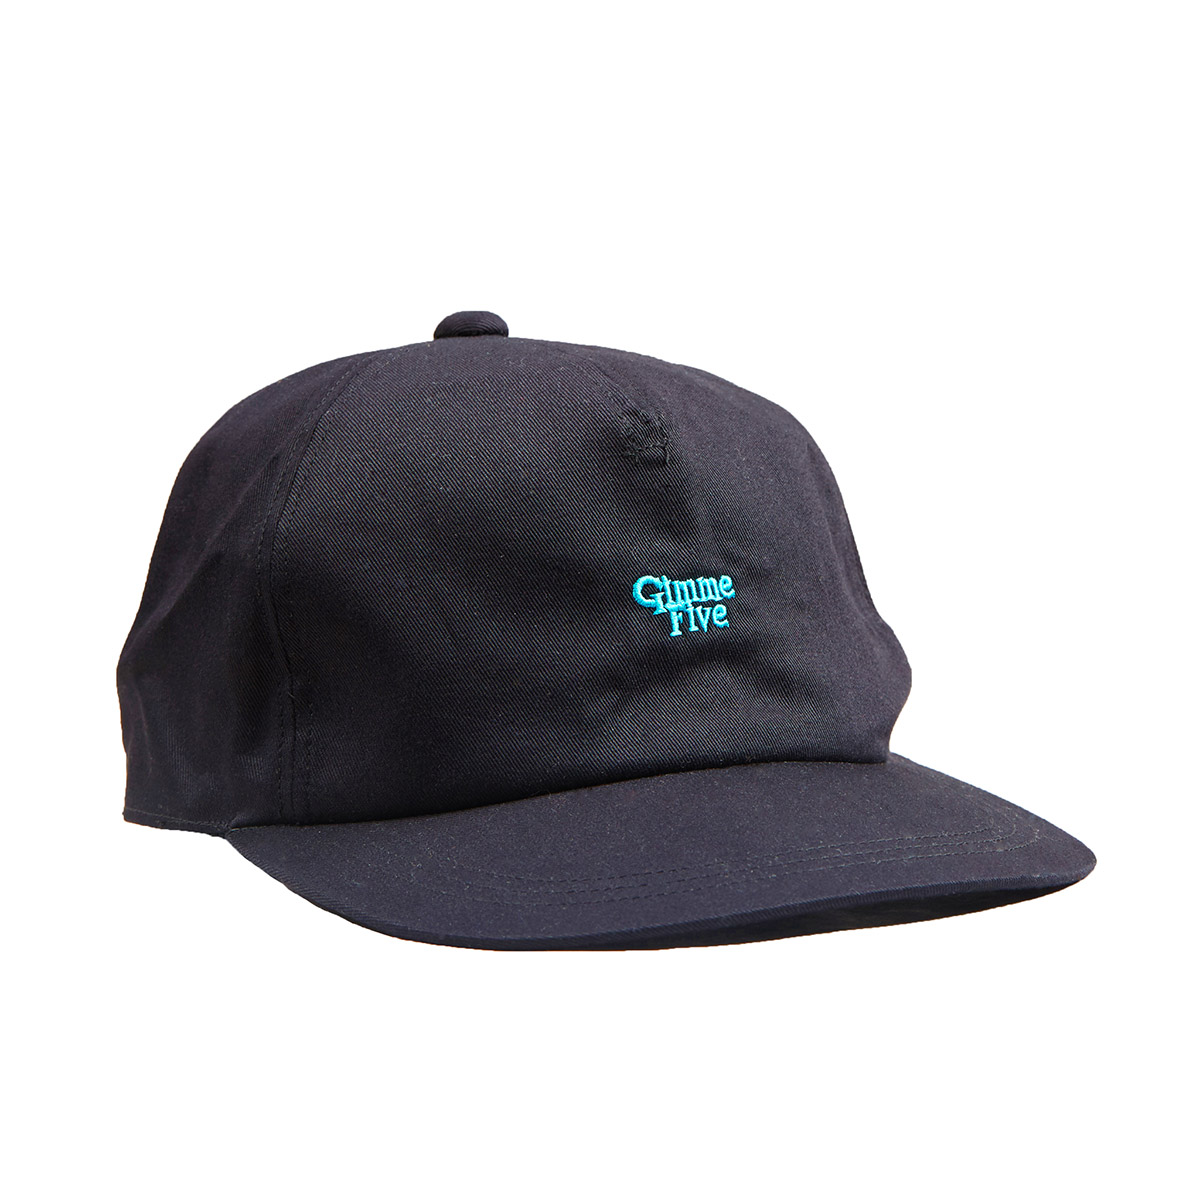 Gimme_5_japan_CAP-Black.jpg